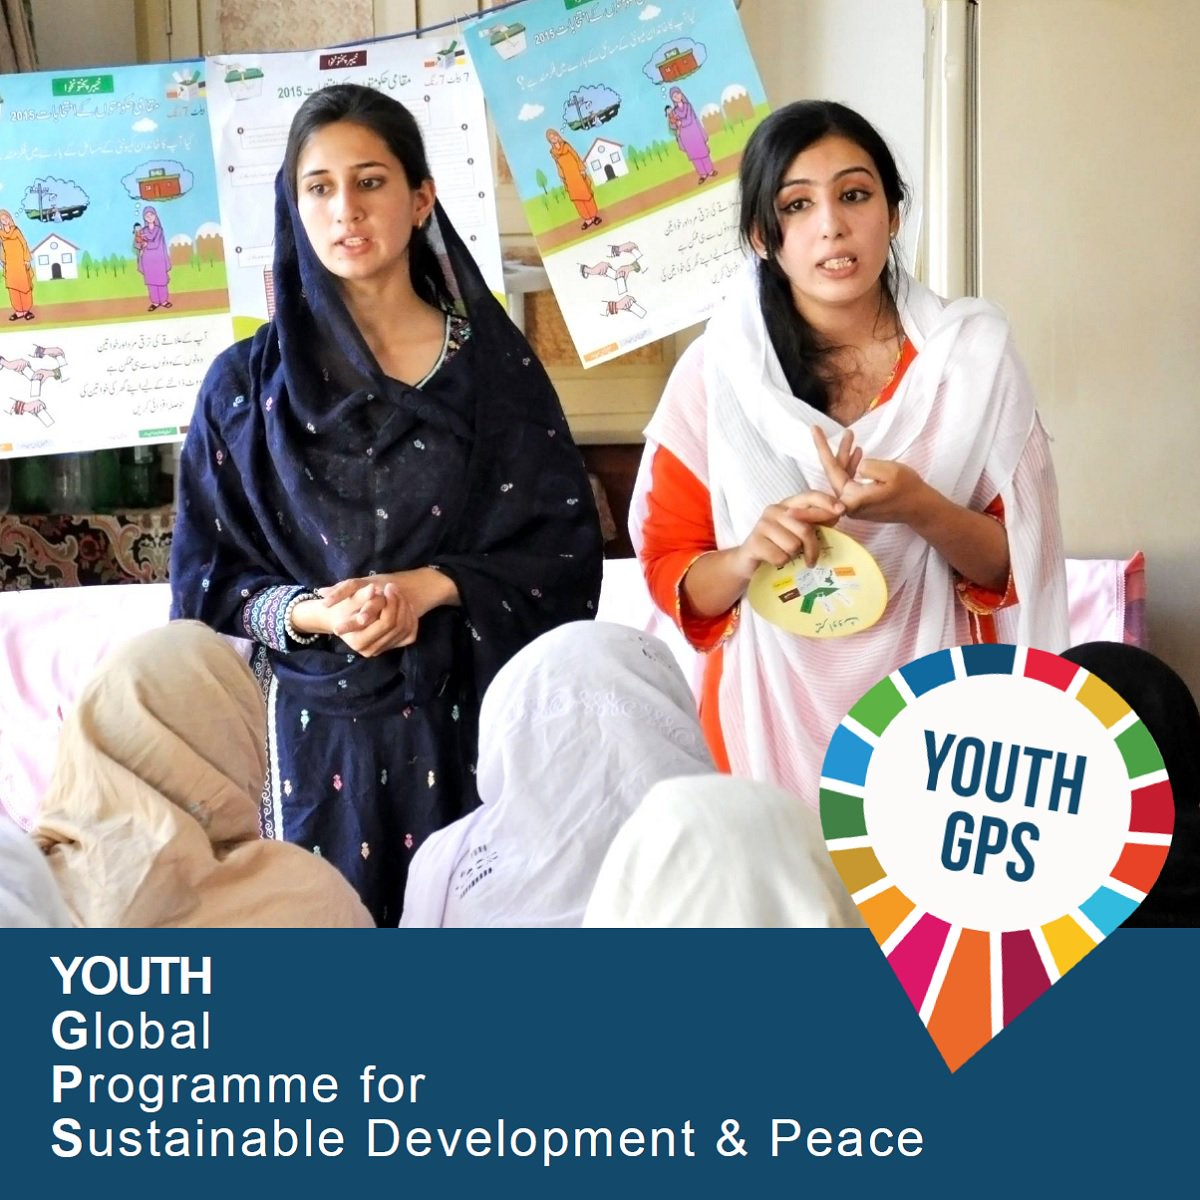 #YouthGPS offers a multi-level response to the needs of young people | Take a look: https://t.co/Ra5cZGiKzt https://t.co/TWMfa7B3EE